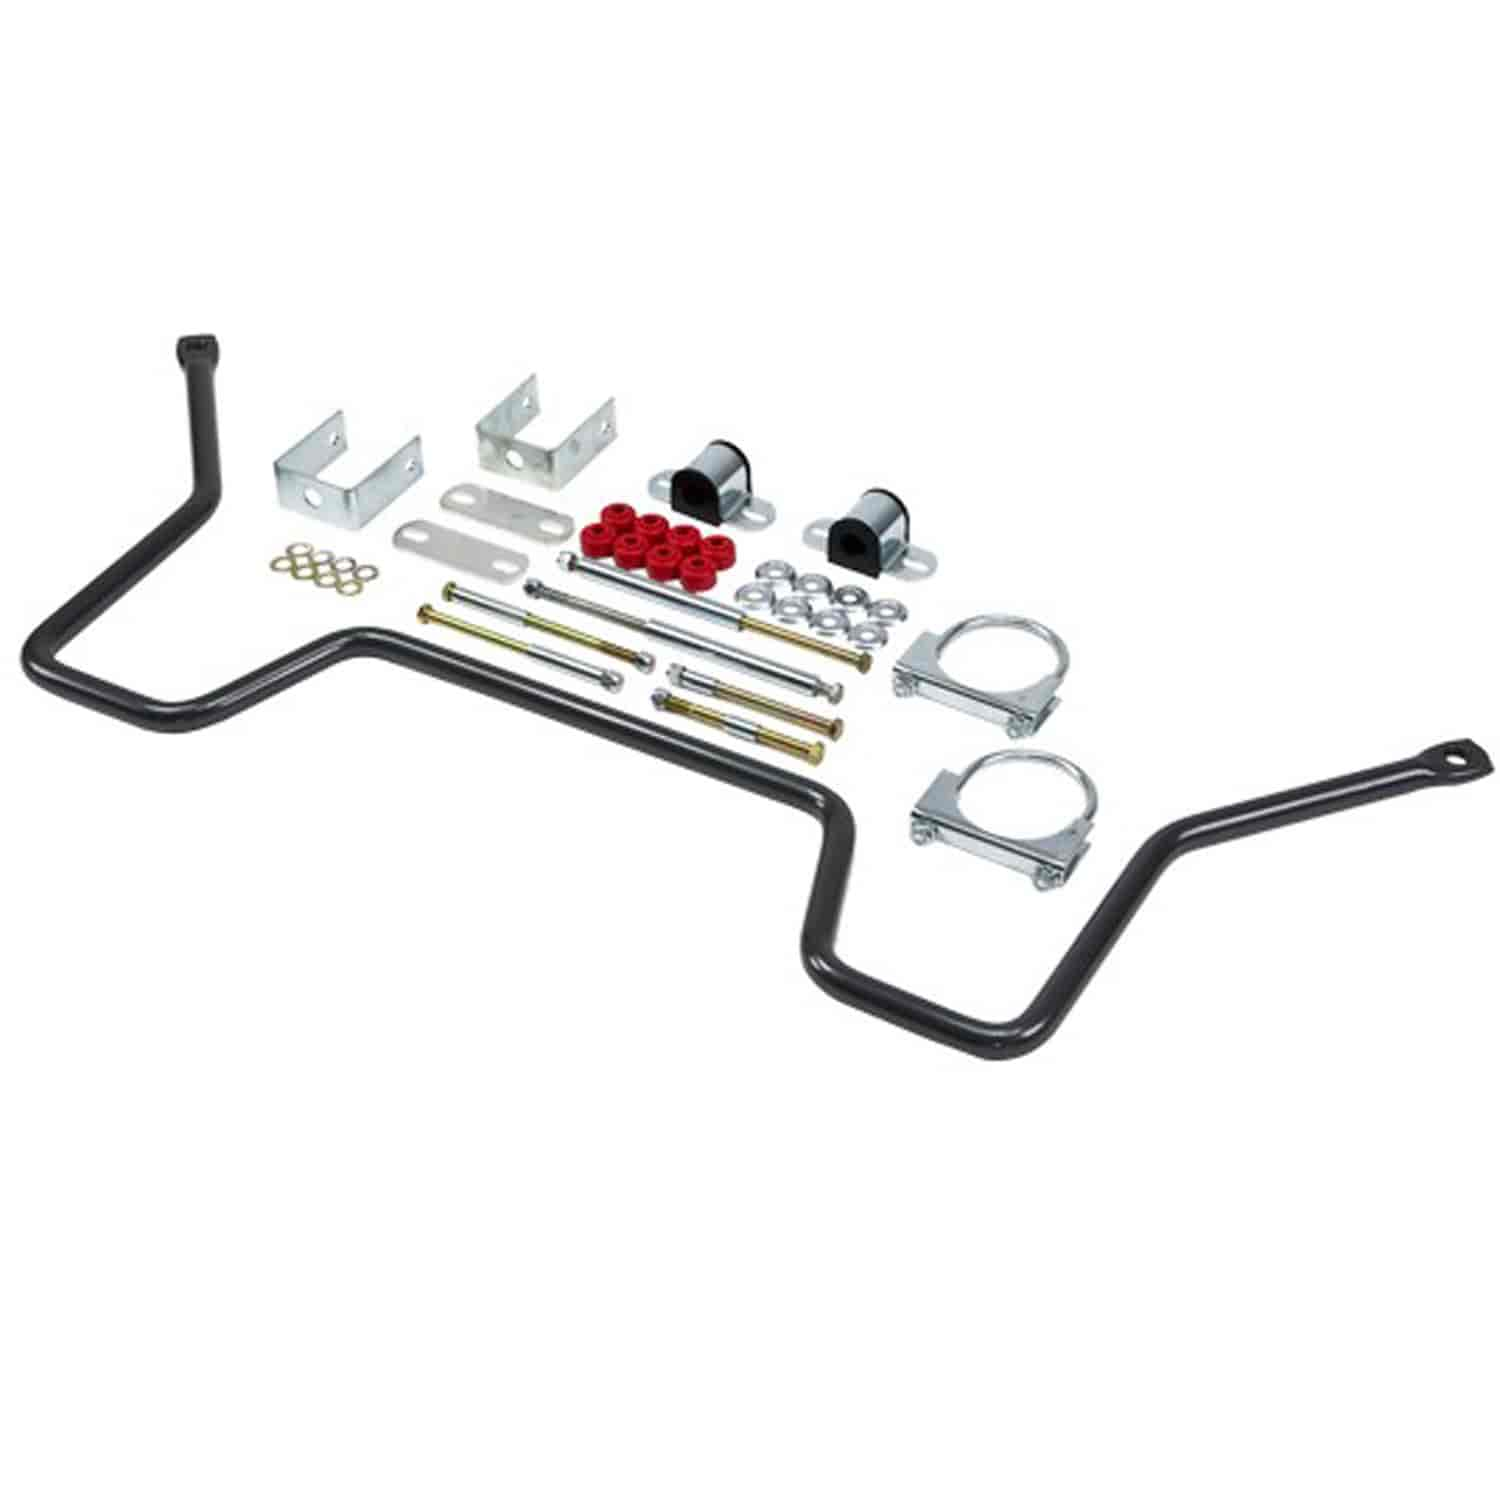 Belltech Rear Sway Bar Kit For Chevy Astro